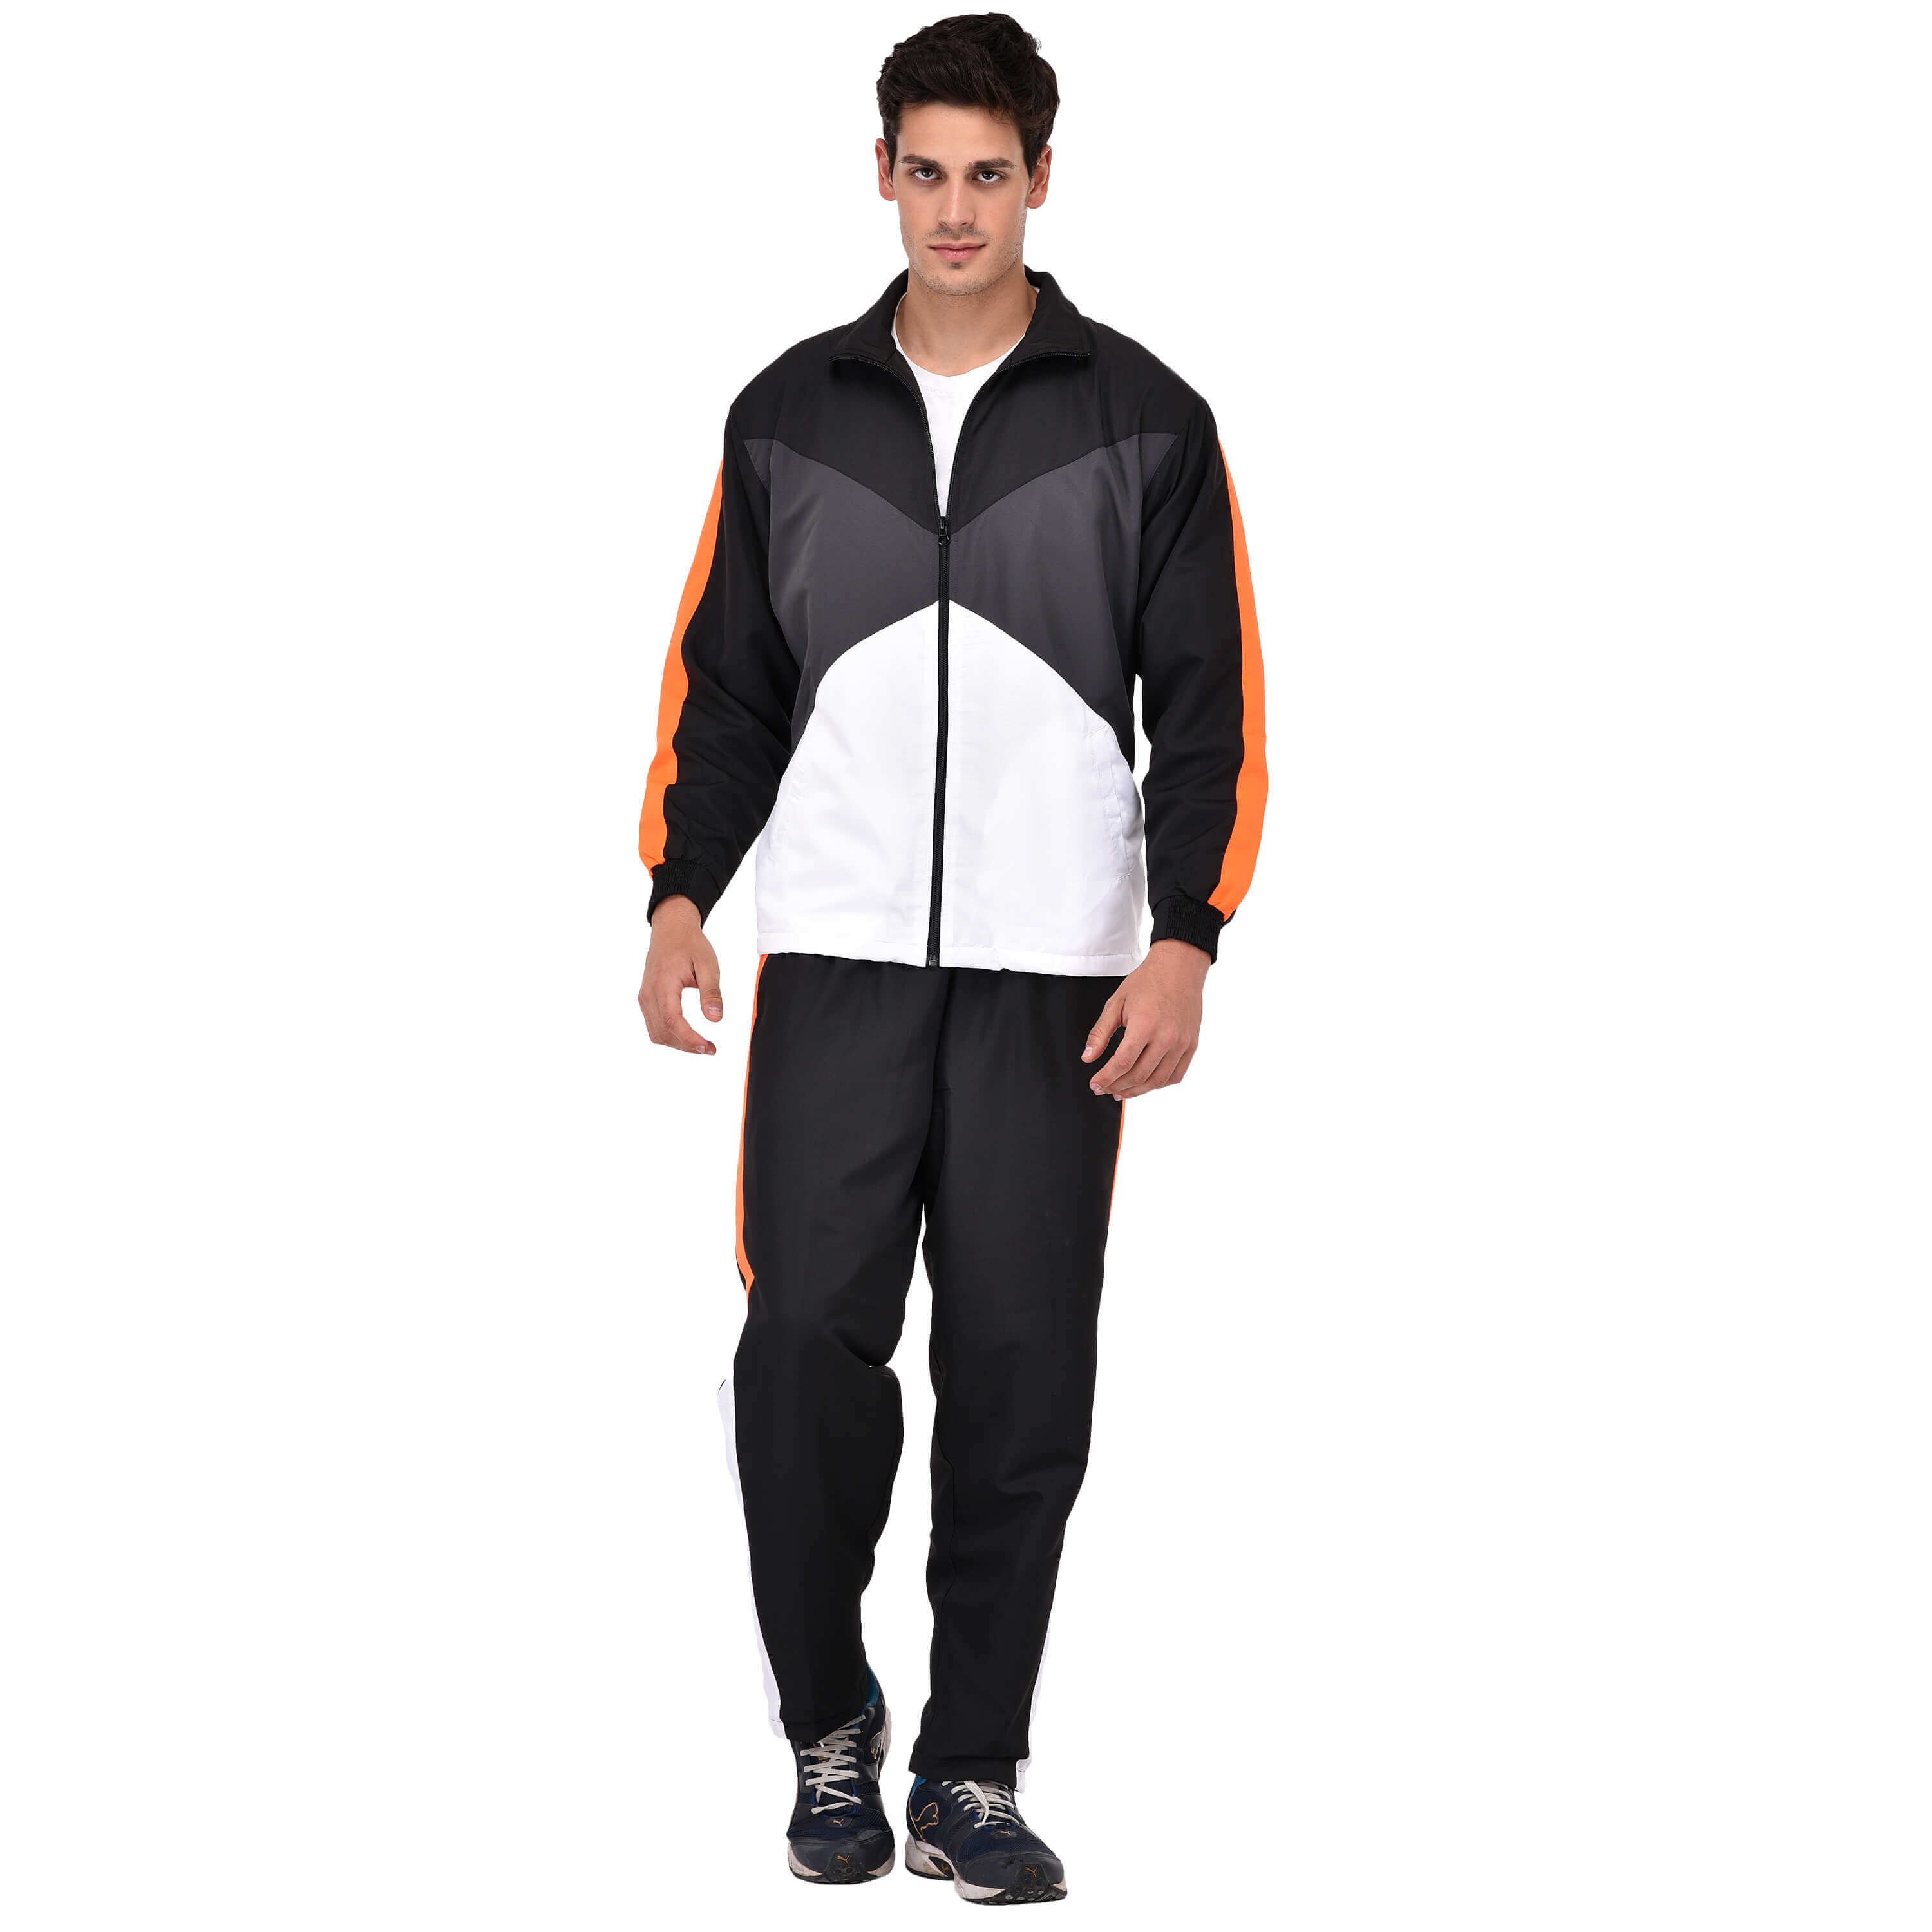 Sports Tracksuit Manufacturers in Noida